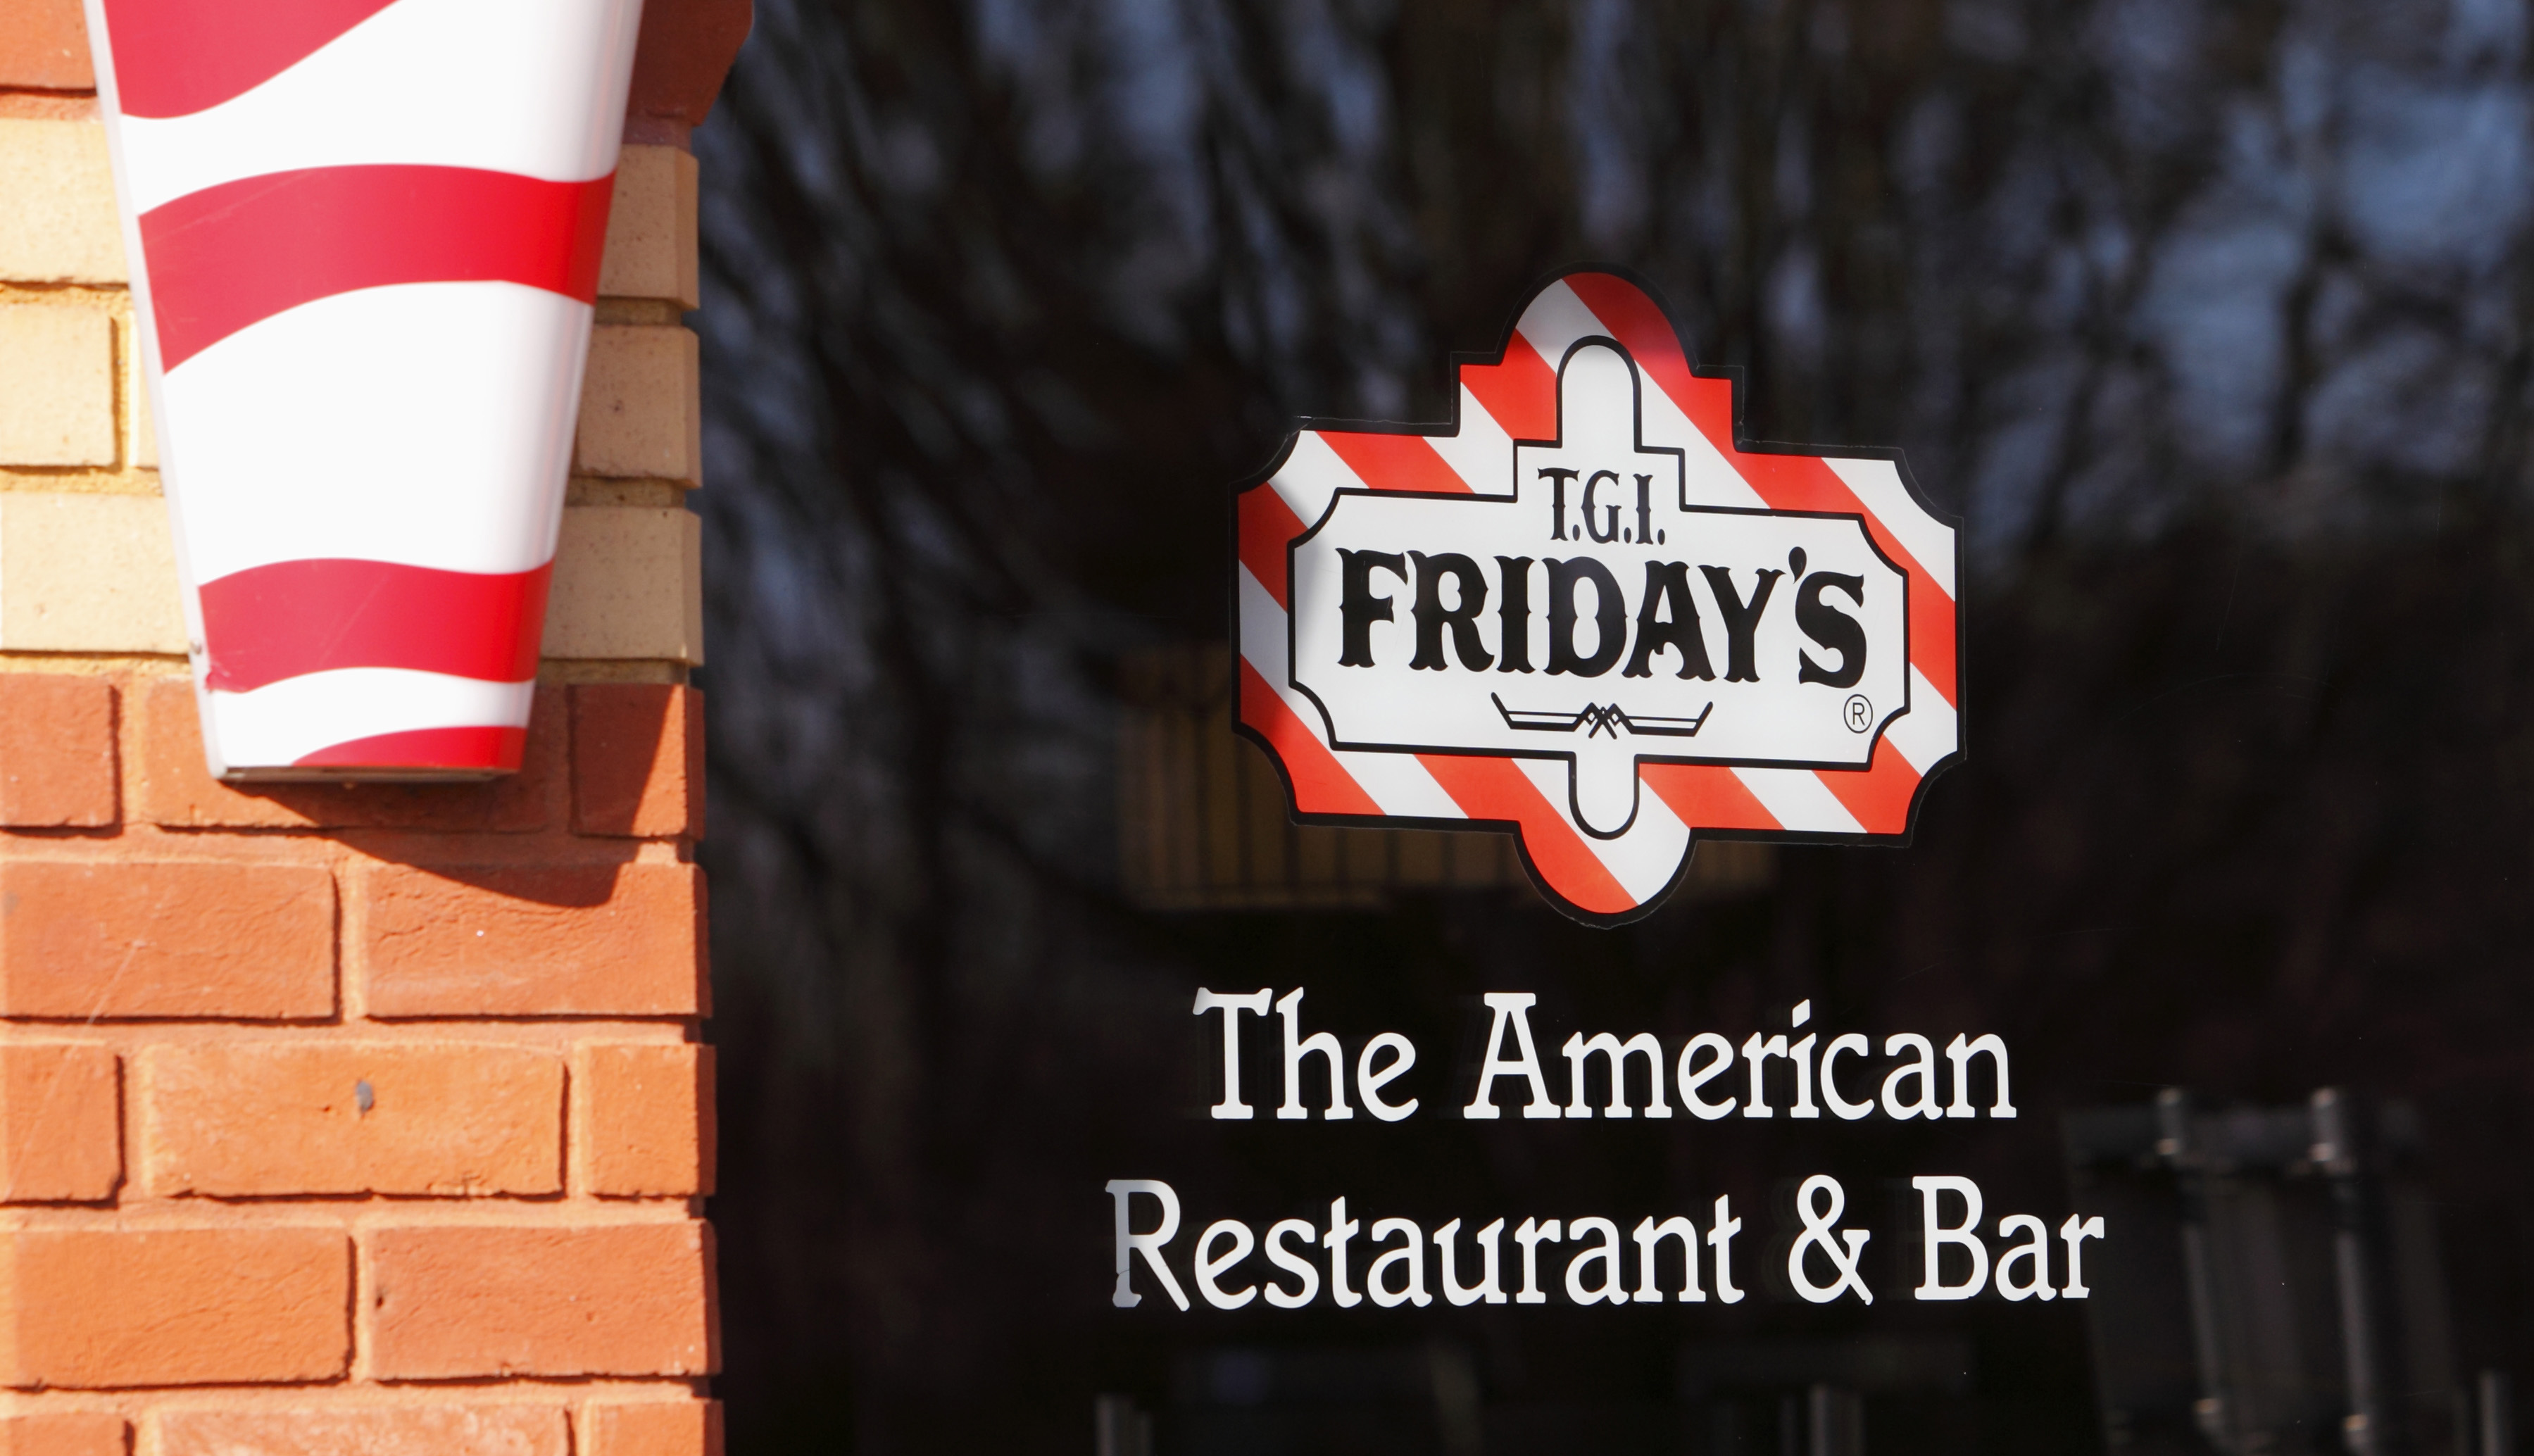 Man Sues TGI Friday's for Not Listing Drink Prices on the Menu - VICE